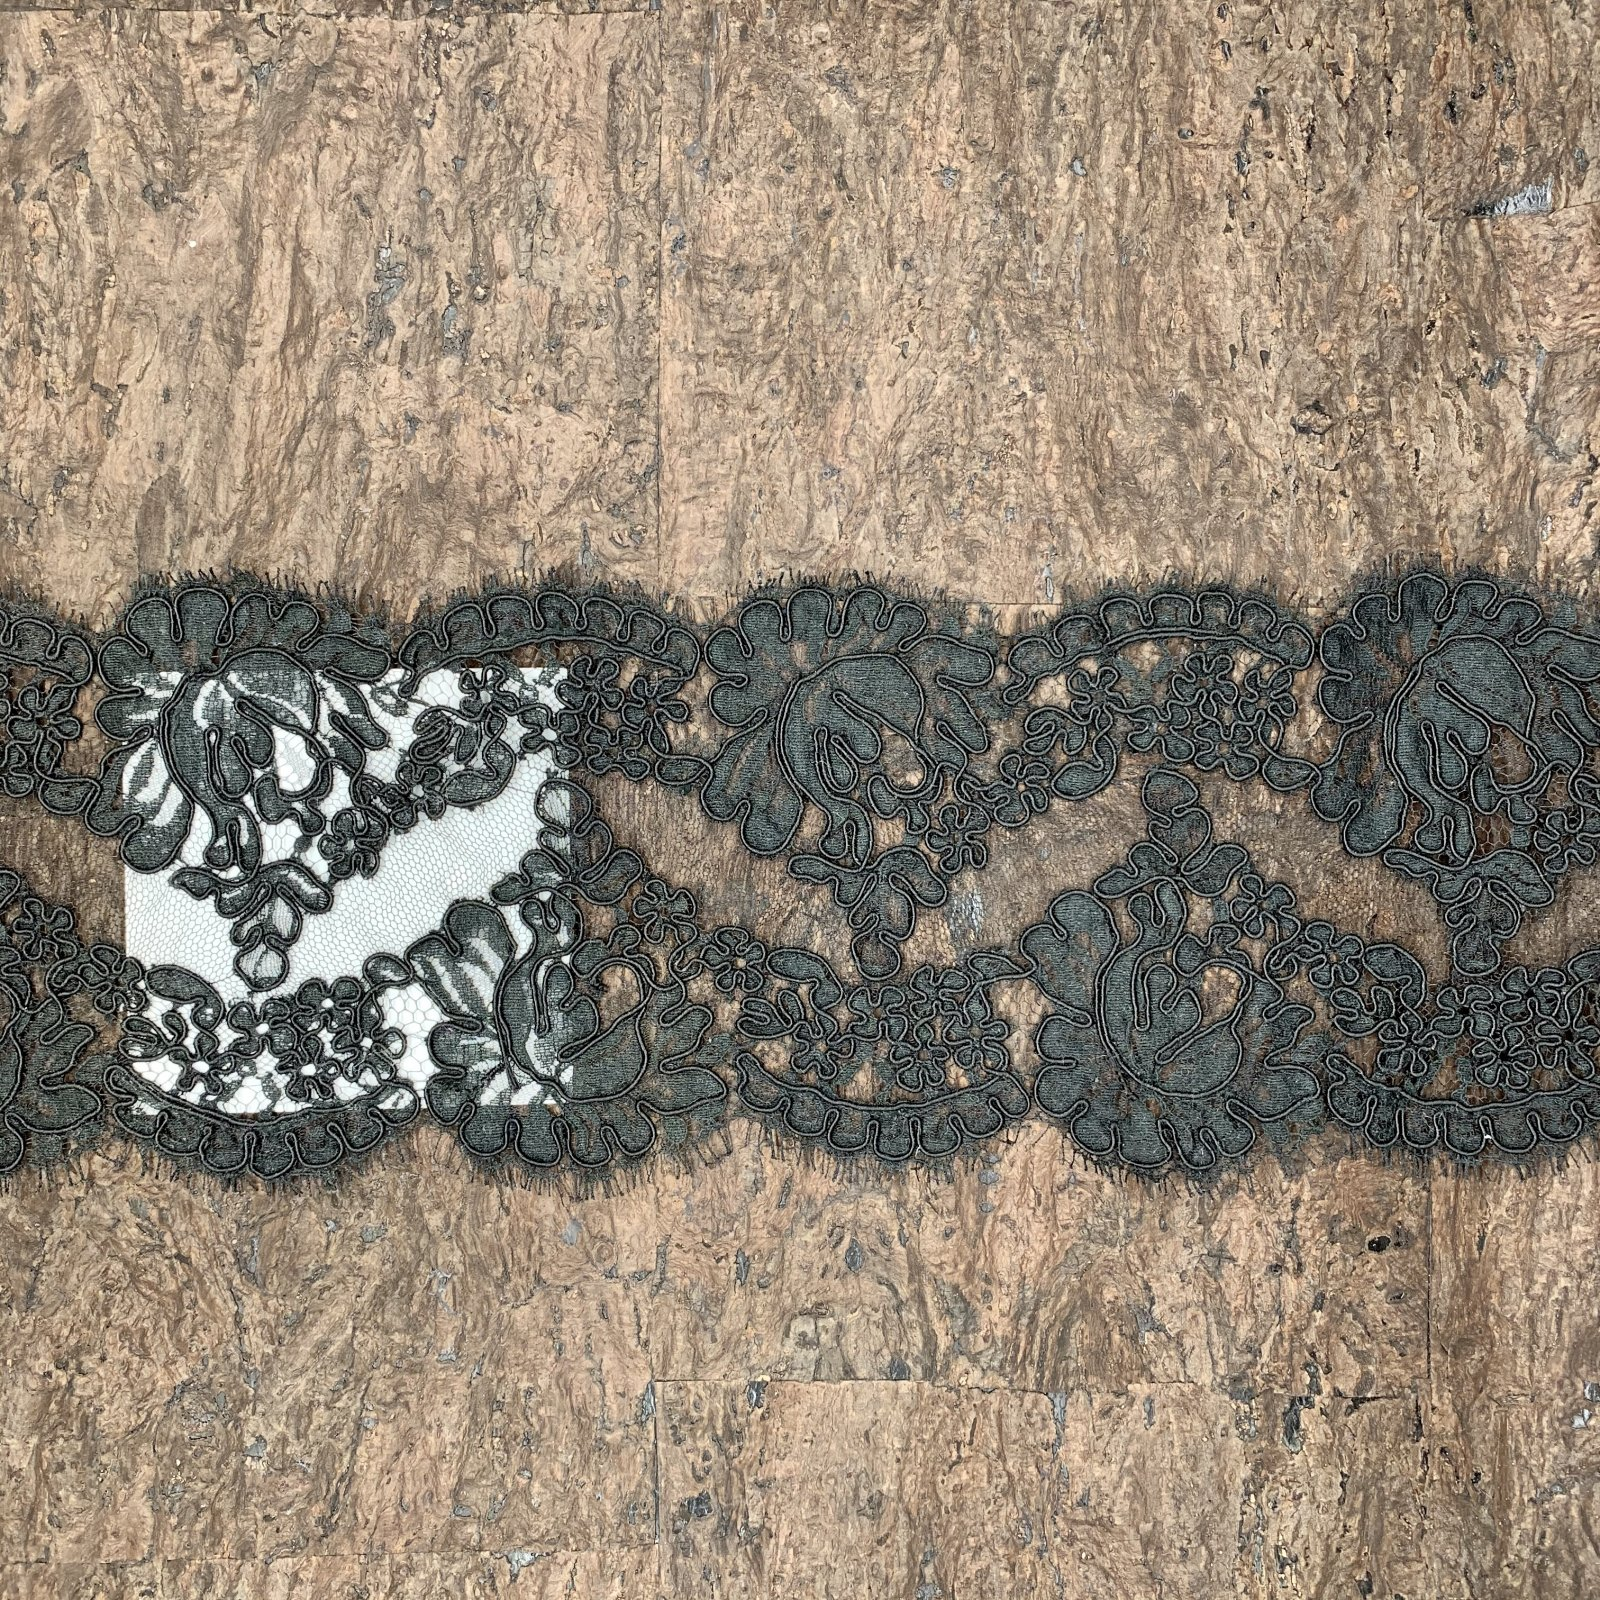 Marilyn - French Lace Trim - 6 wide